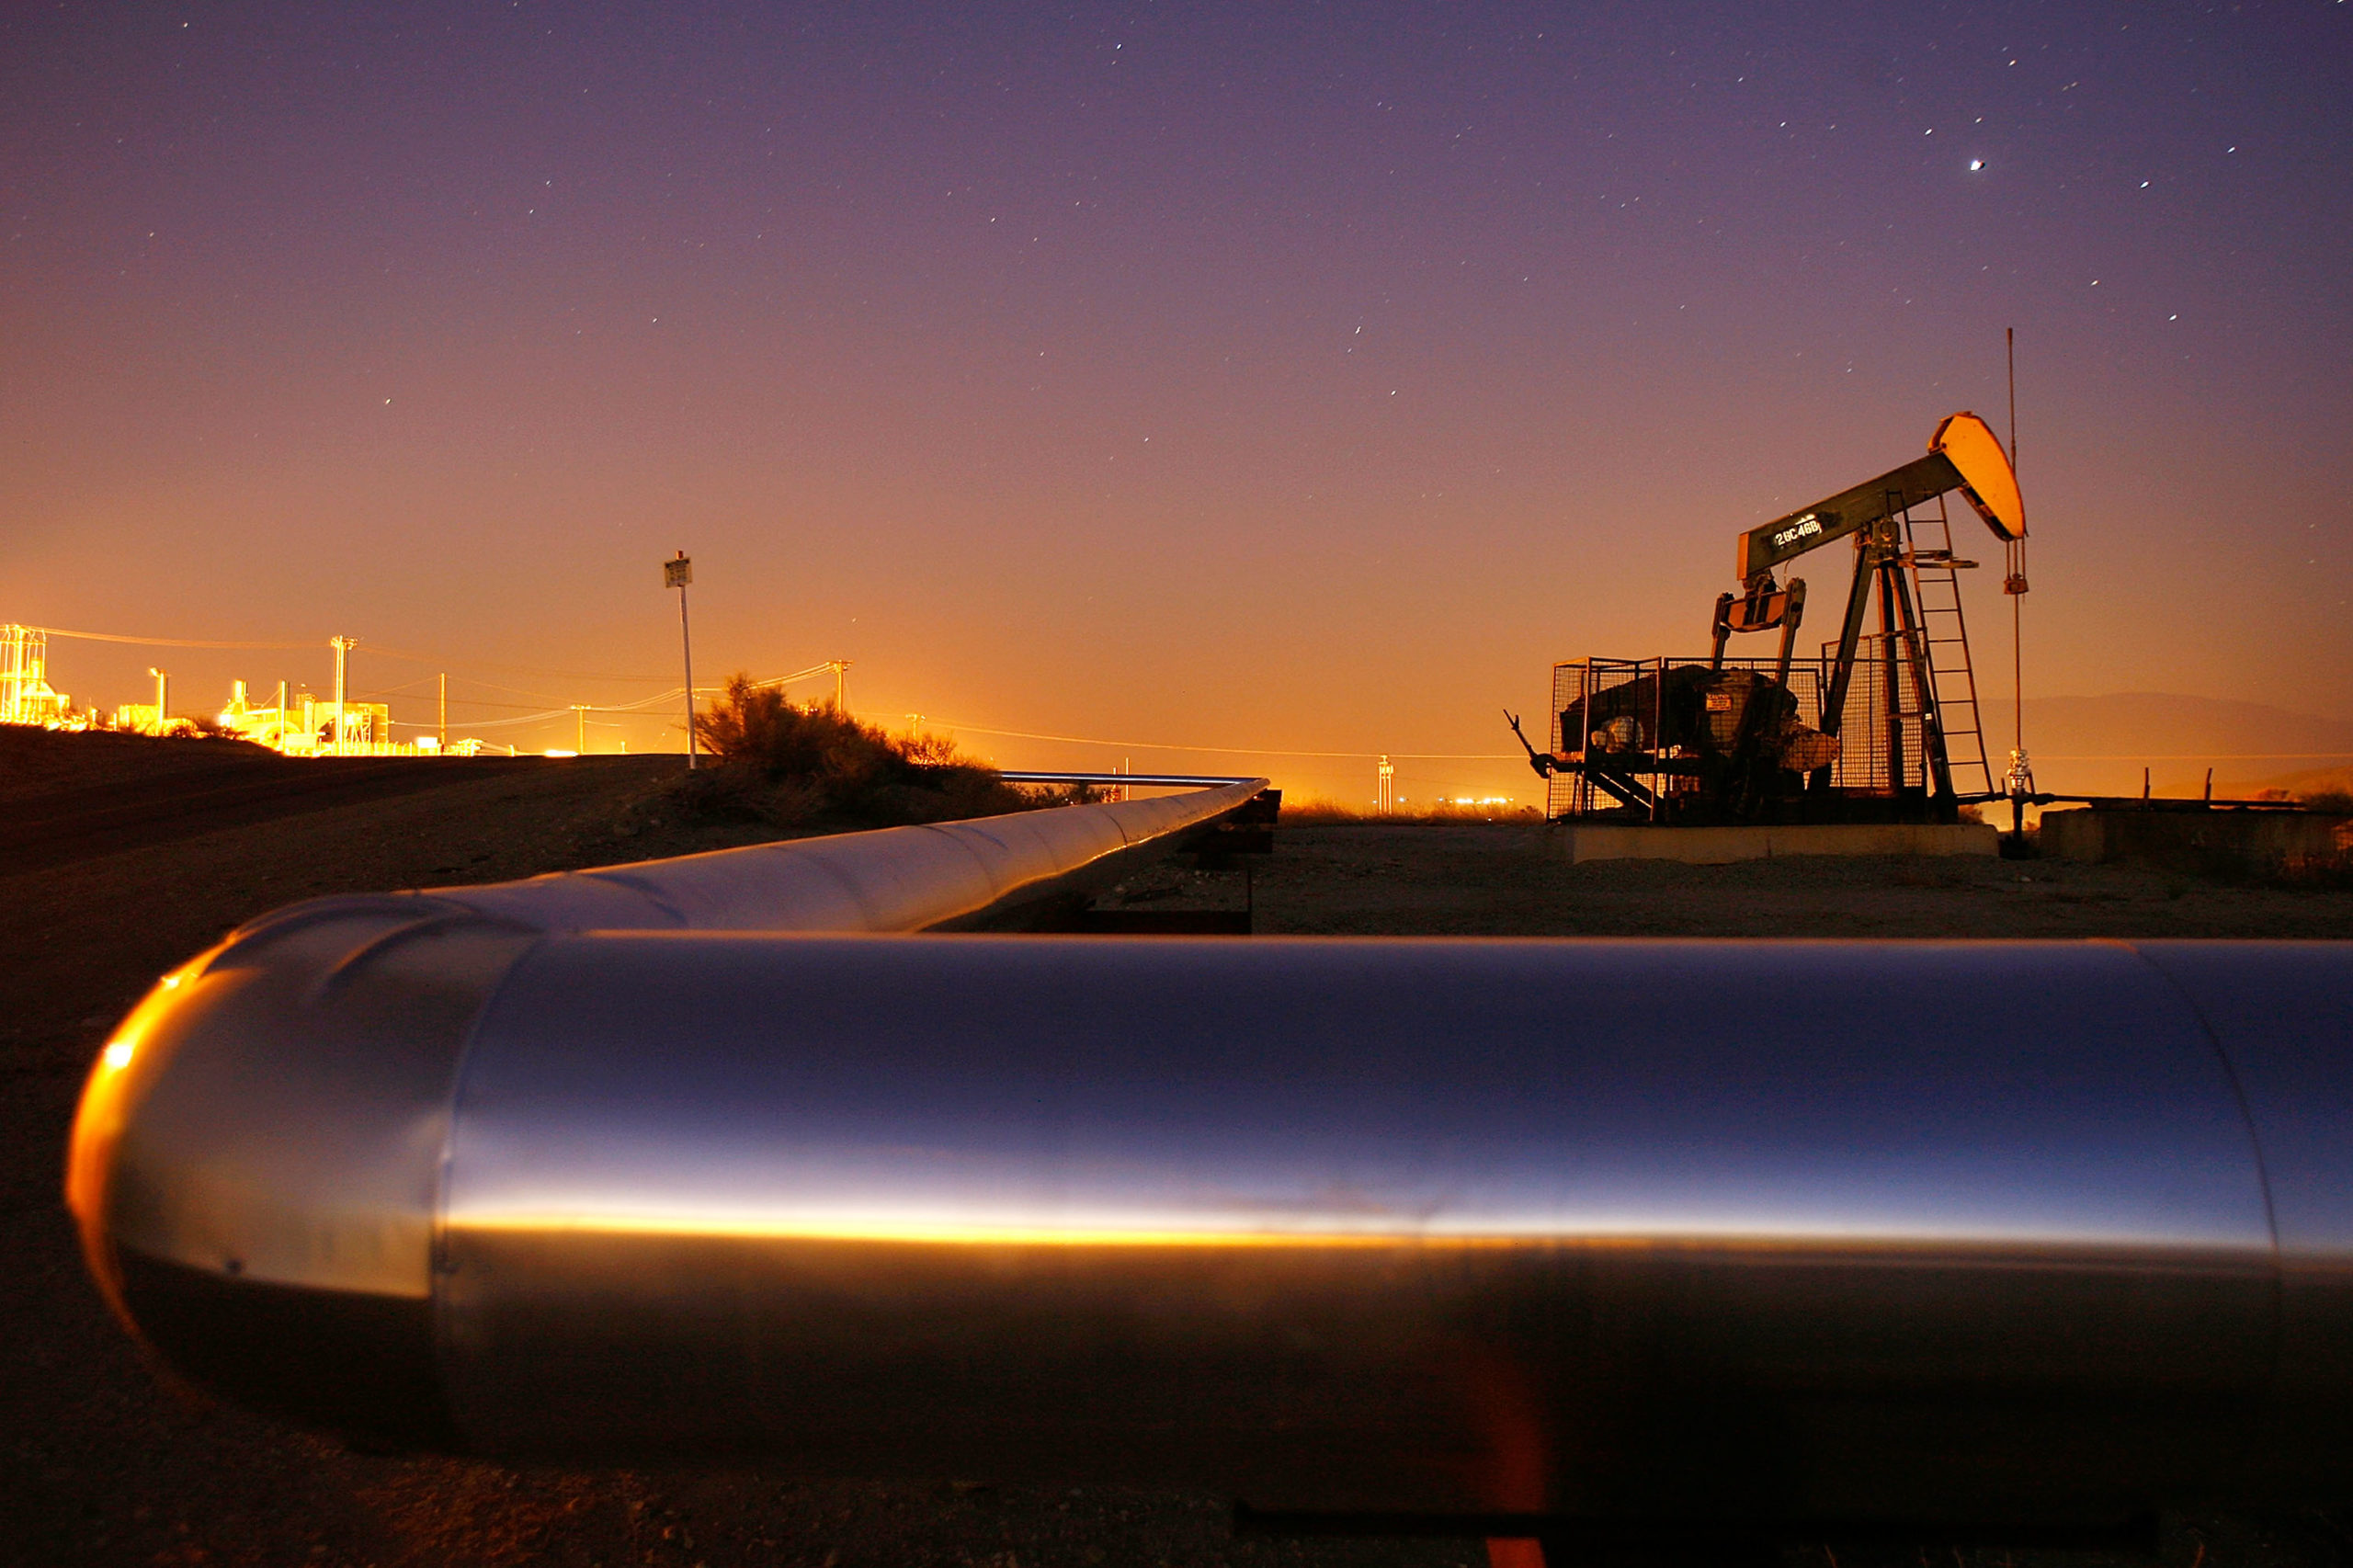 An oil rig south of town extracts crude on July 21, 2008 in Taft, California. (Photo by David McNew/Getty Images)